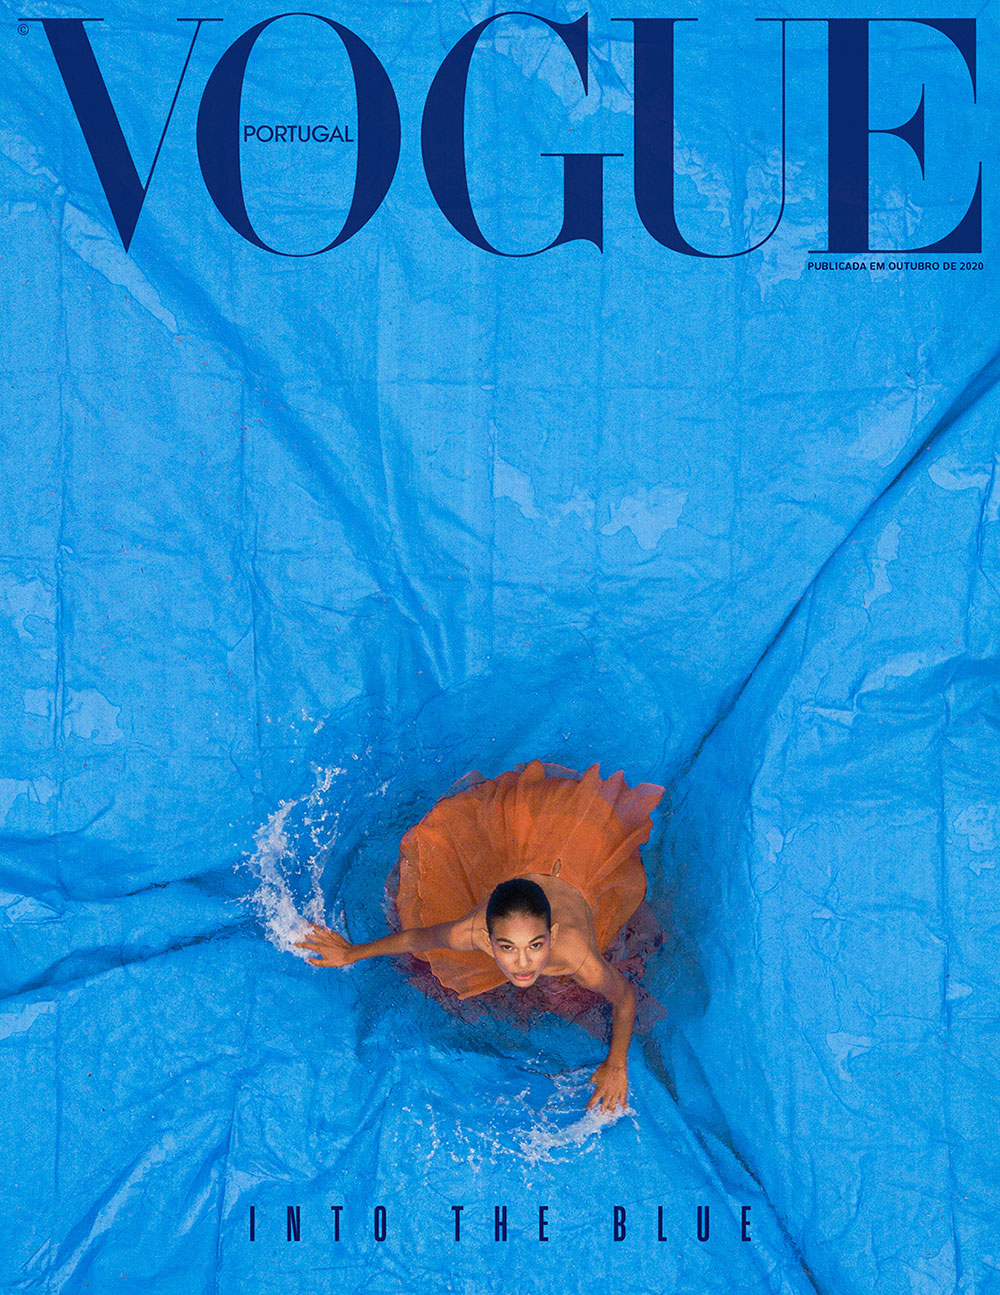 © Ricardo Abrahão | Vogue Portugal Blue issue